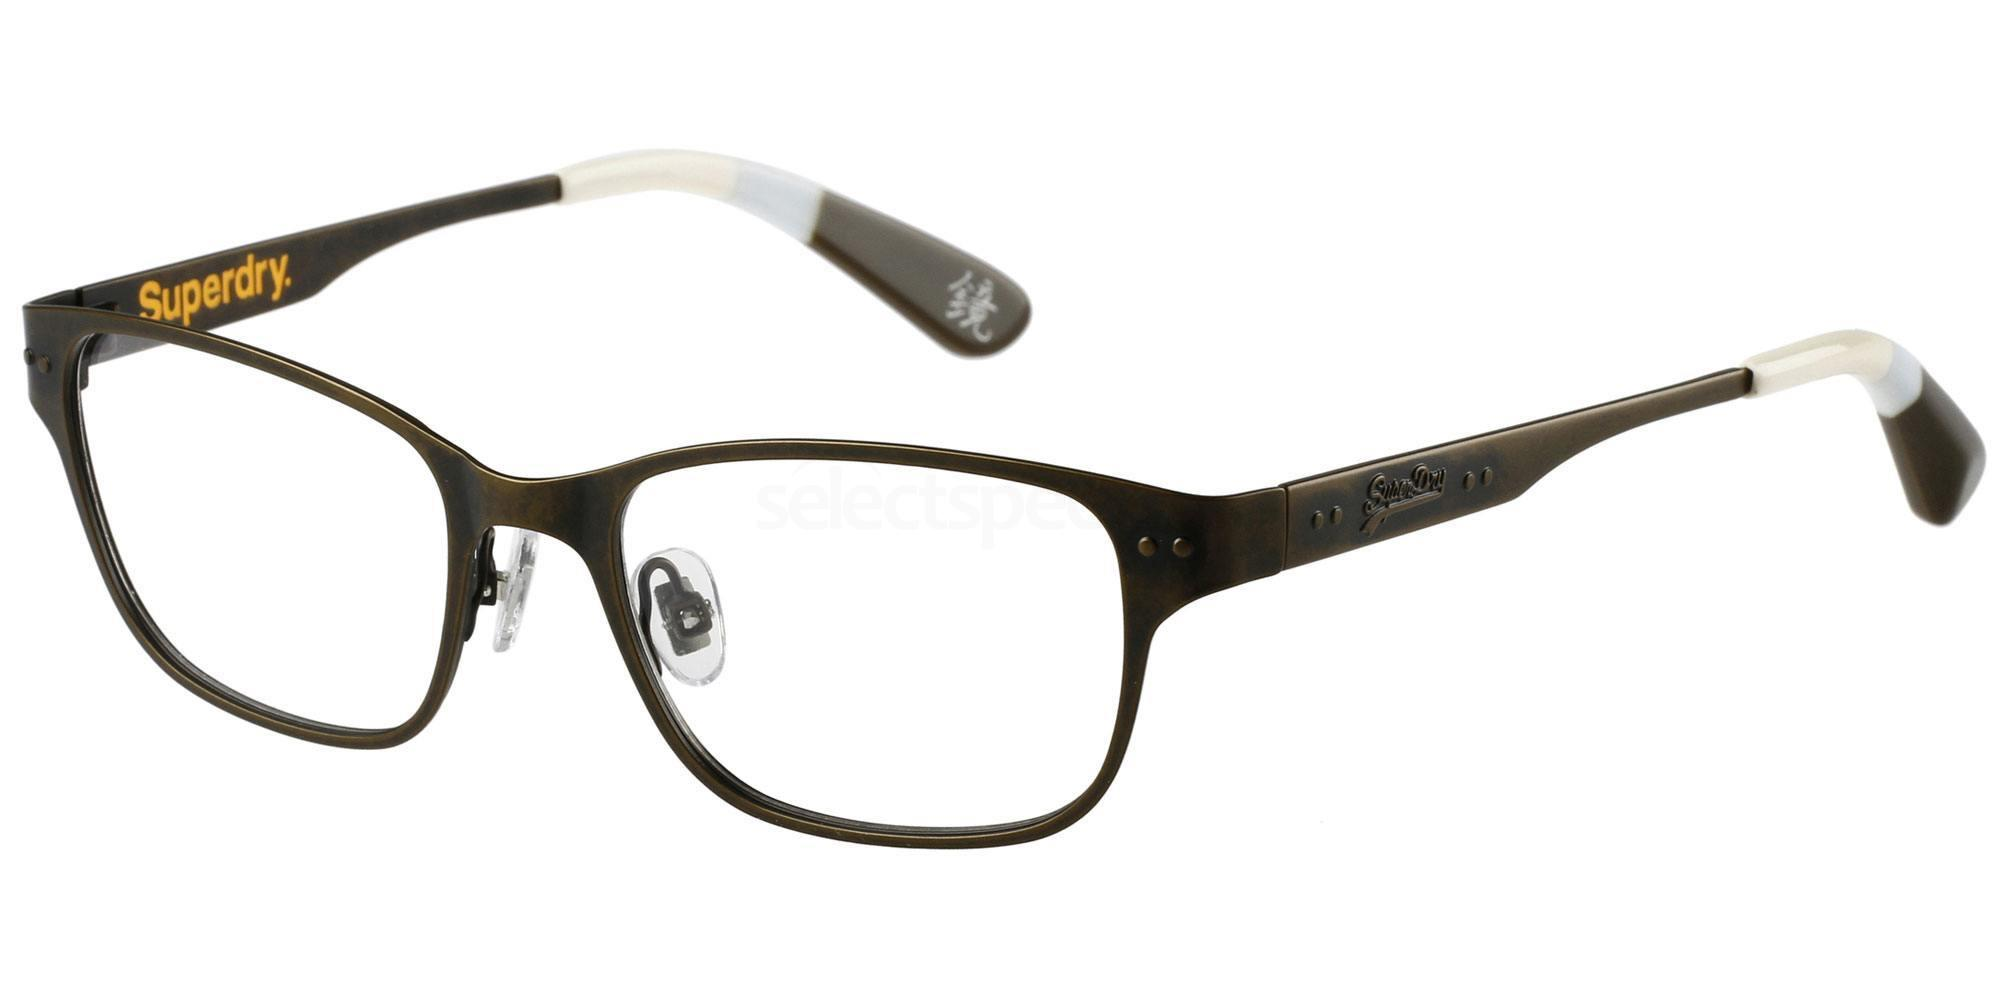 001 SDO-SANDY Glasses, Superdry